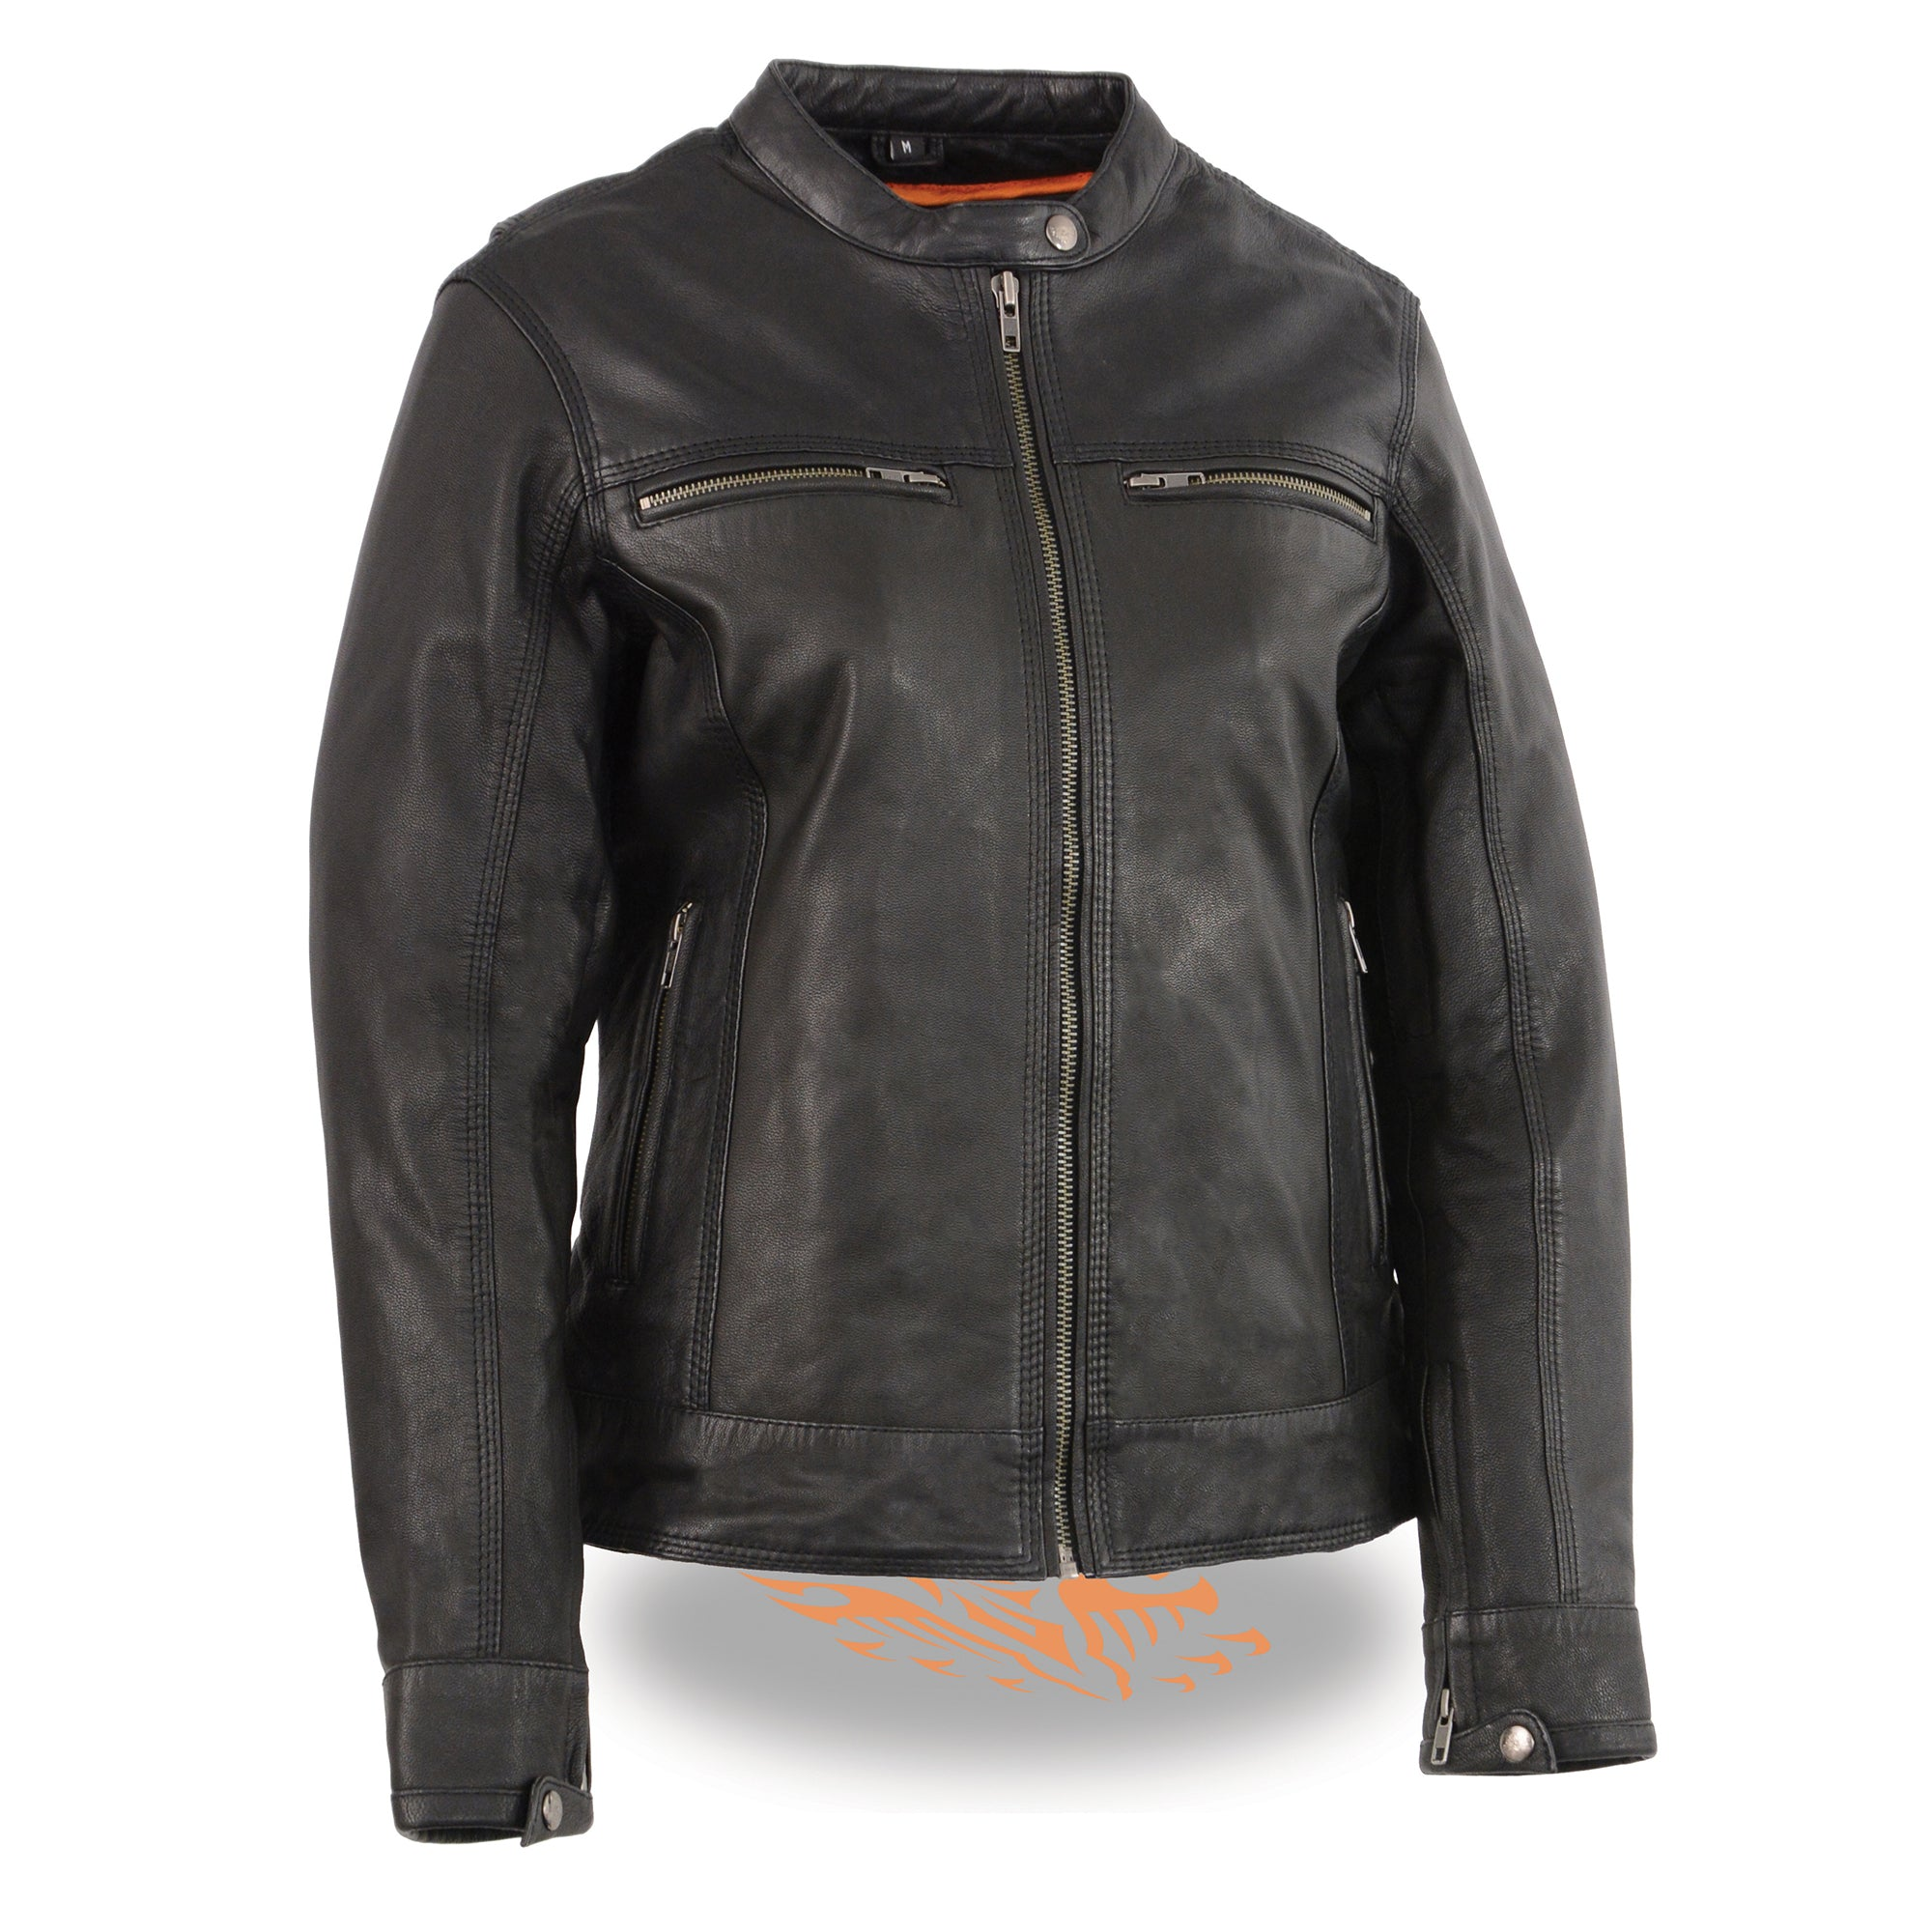 Women's Lightweight Triple Stitch Scooter Jacket w/ Venting